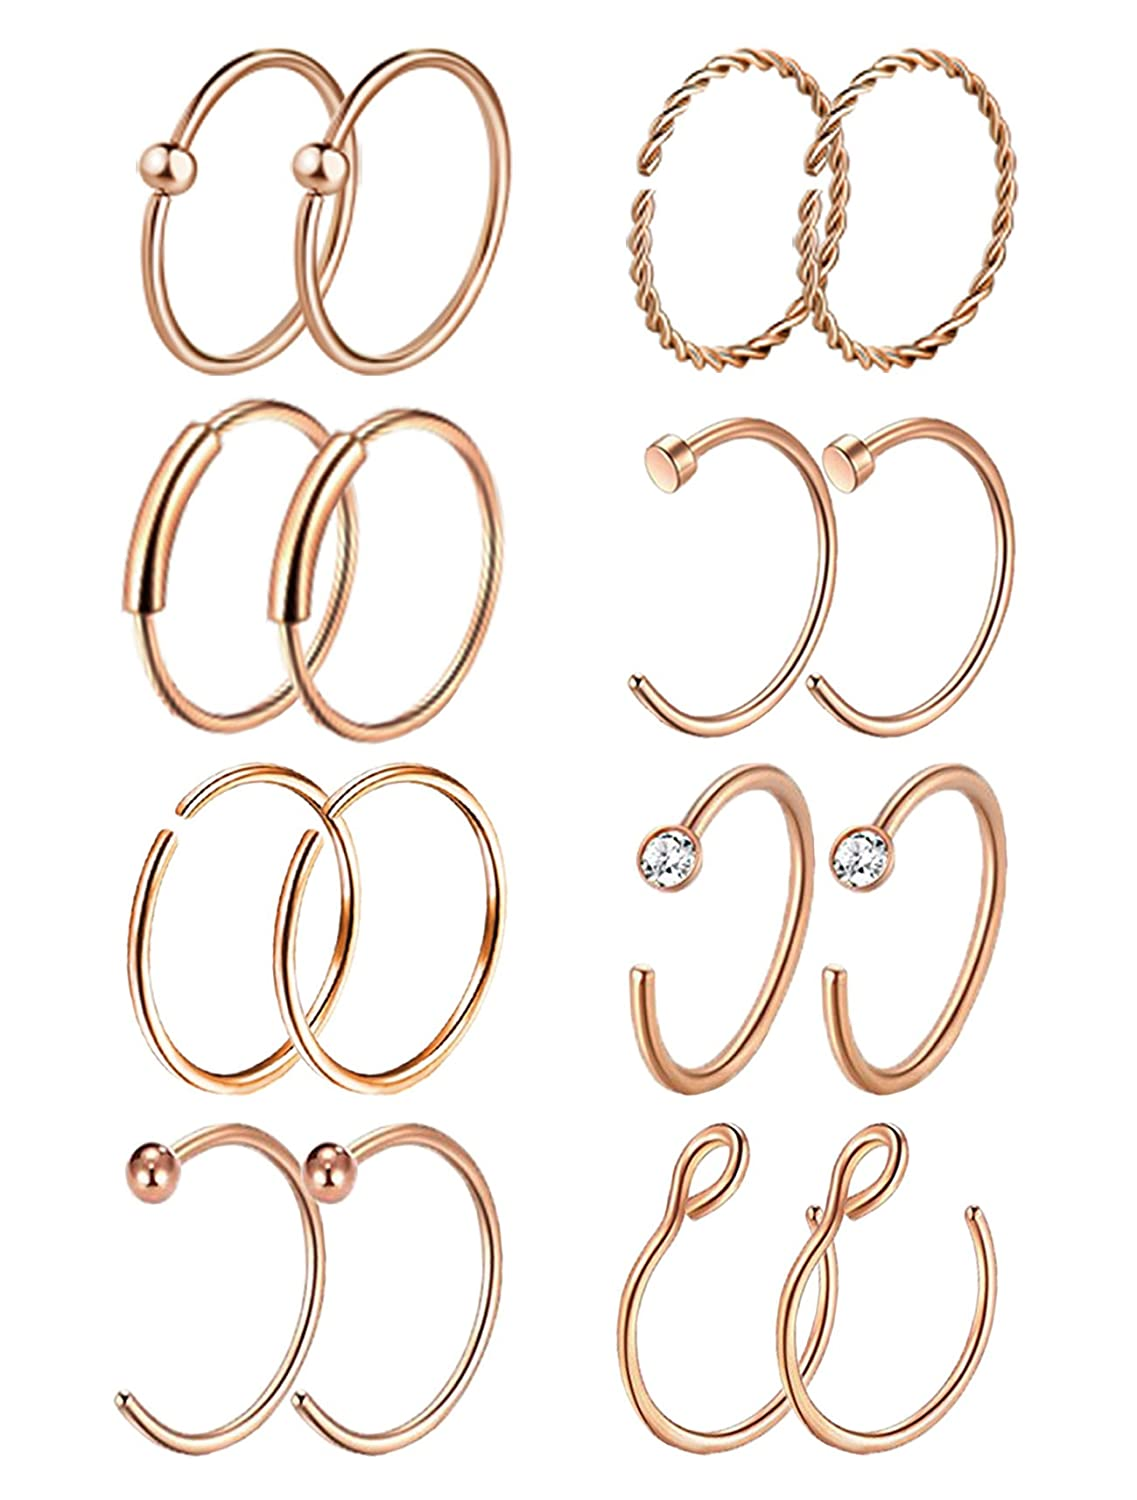 Masedy 16Pcs 20G 316L Stainless Steel Nose Rings Hoop Tragus Cartilage Helix Ring Lip Septum Piercing 8-10MM Masedy-AP07-Silver-8MM